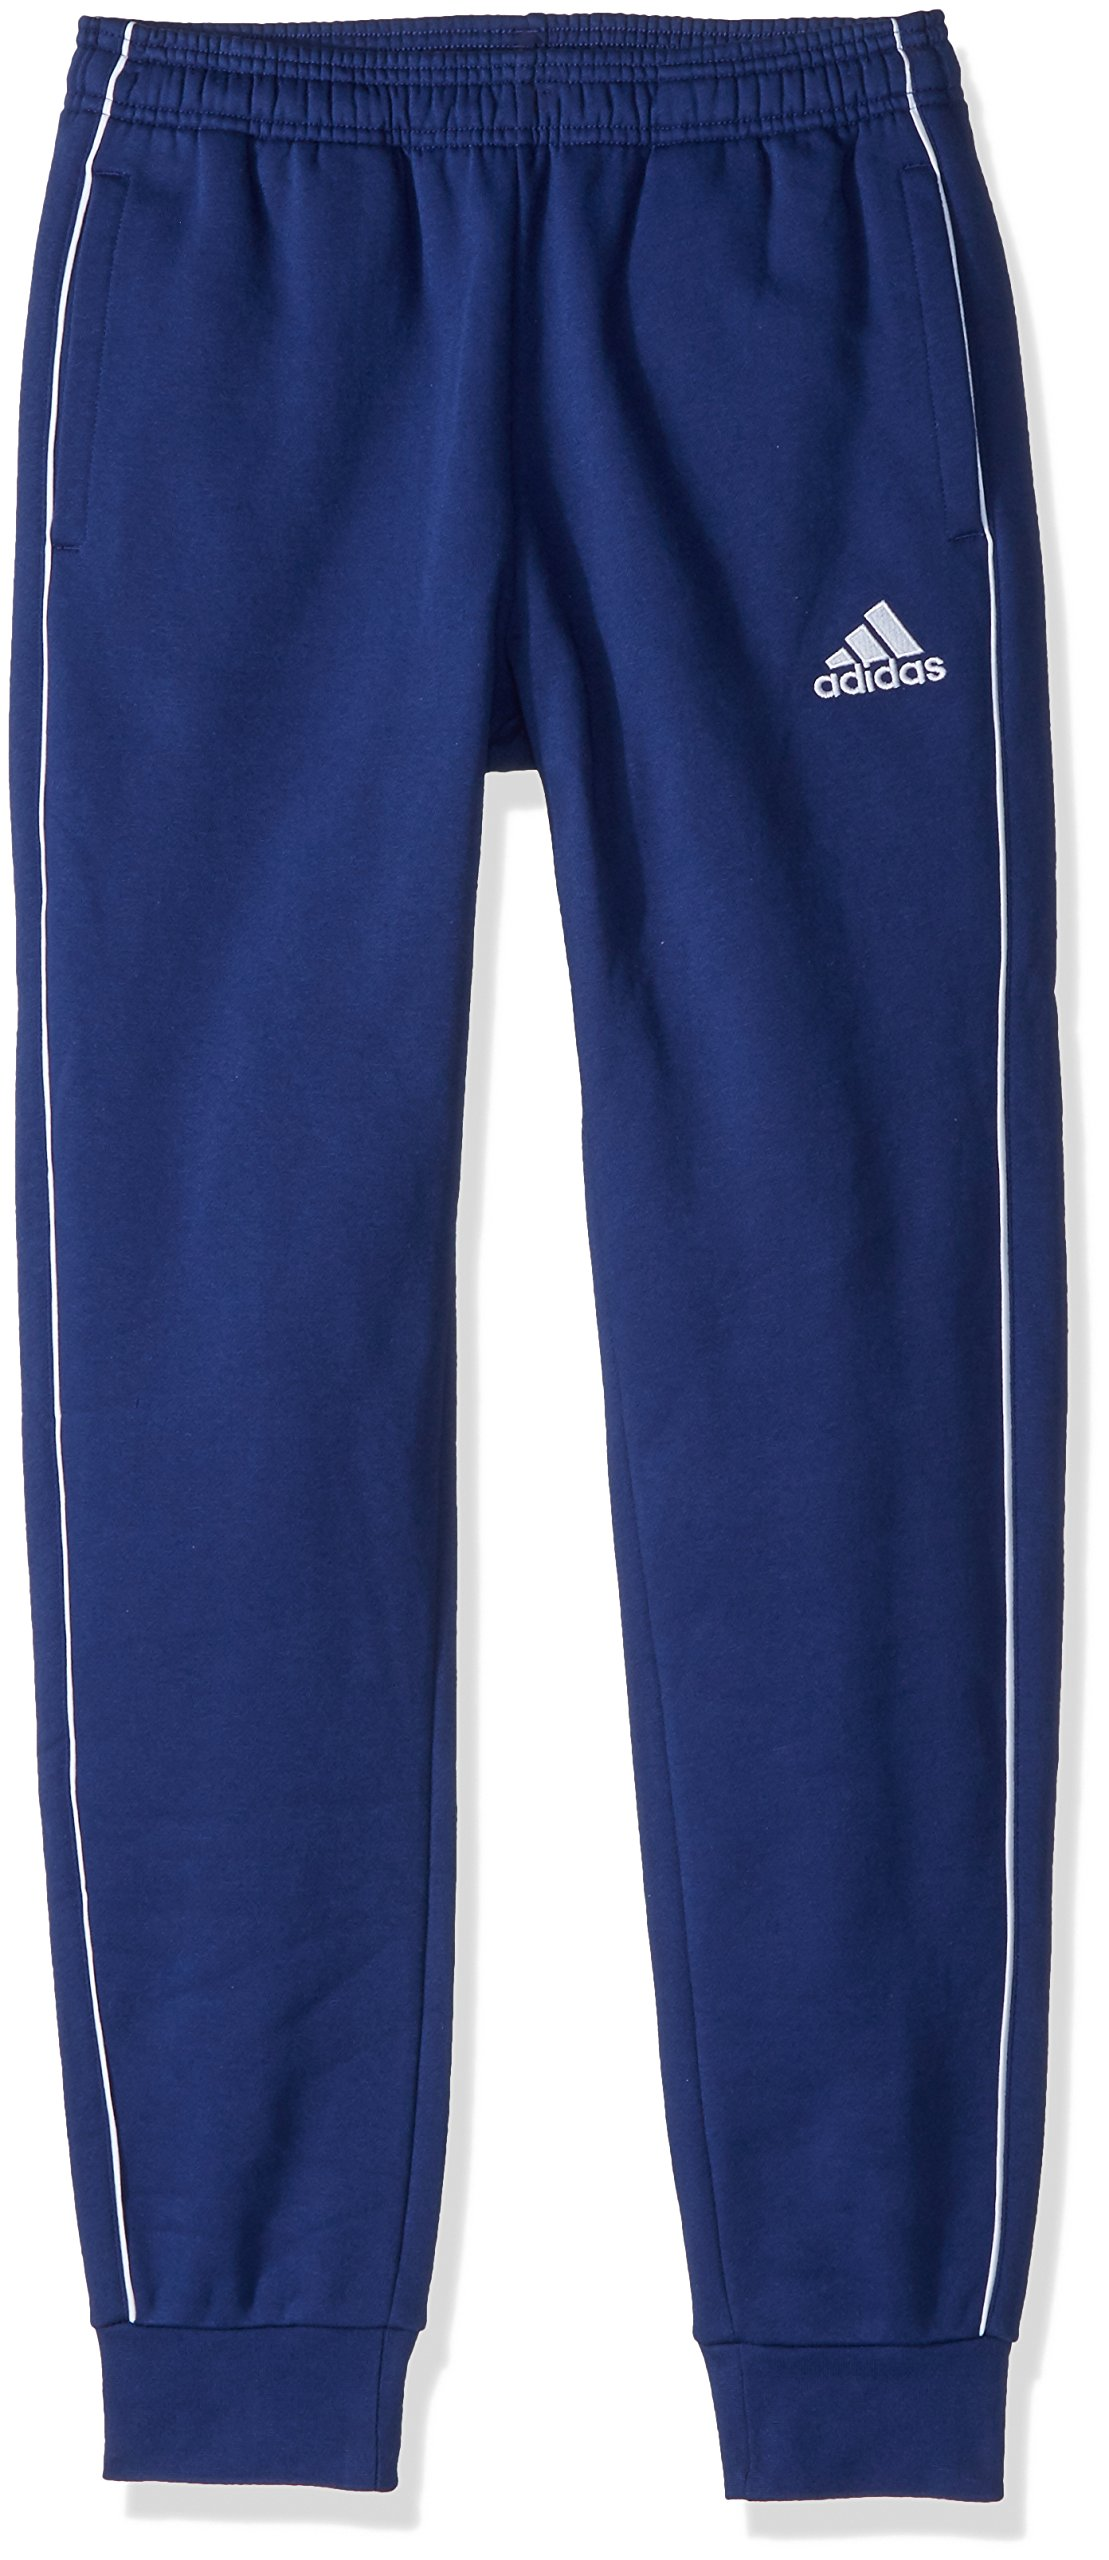 adidas Core 18 Sweat Pants, Dark Blue/White, S by adidas